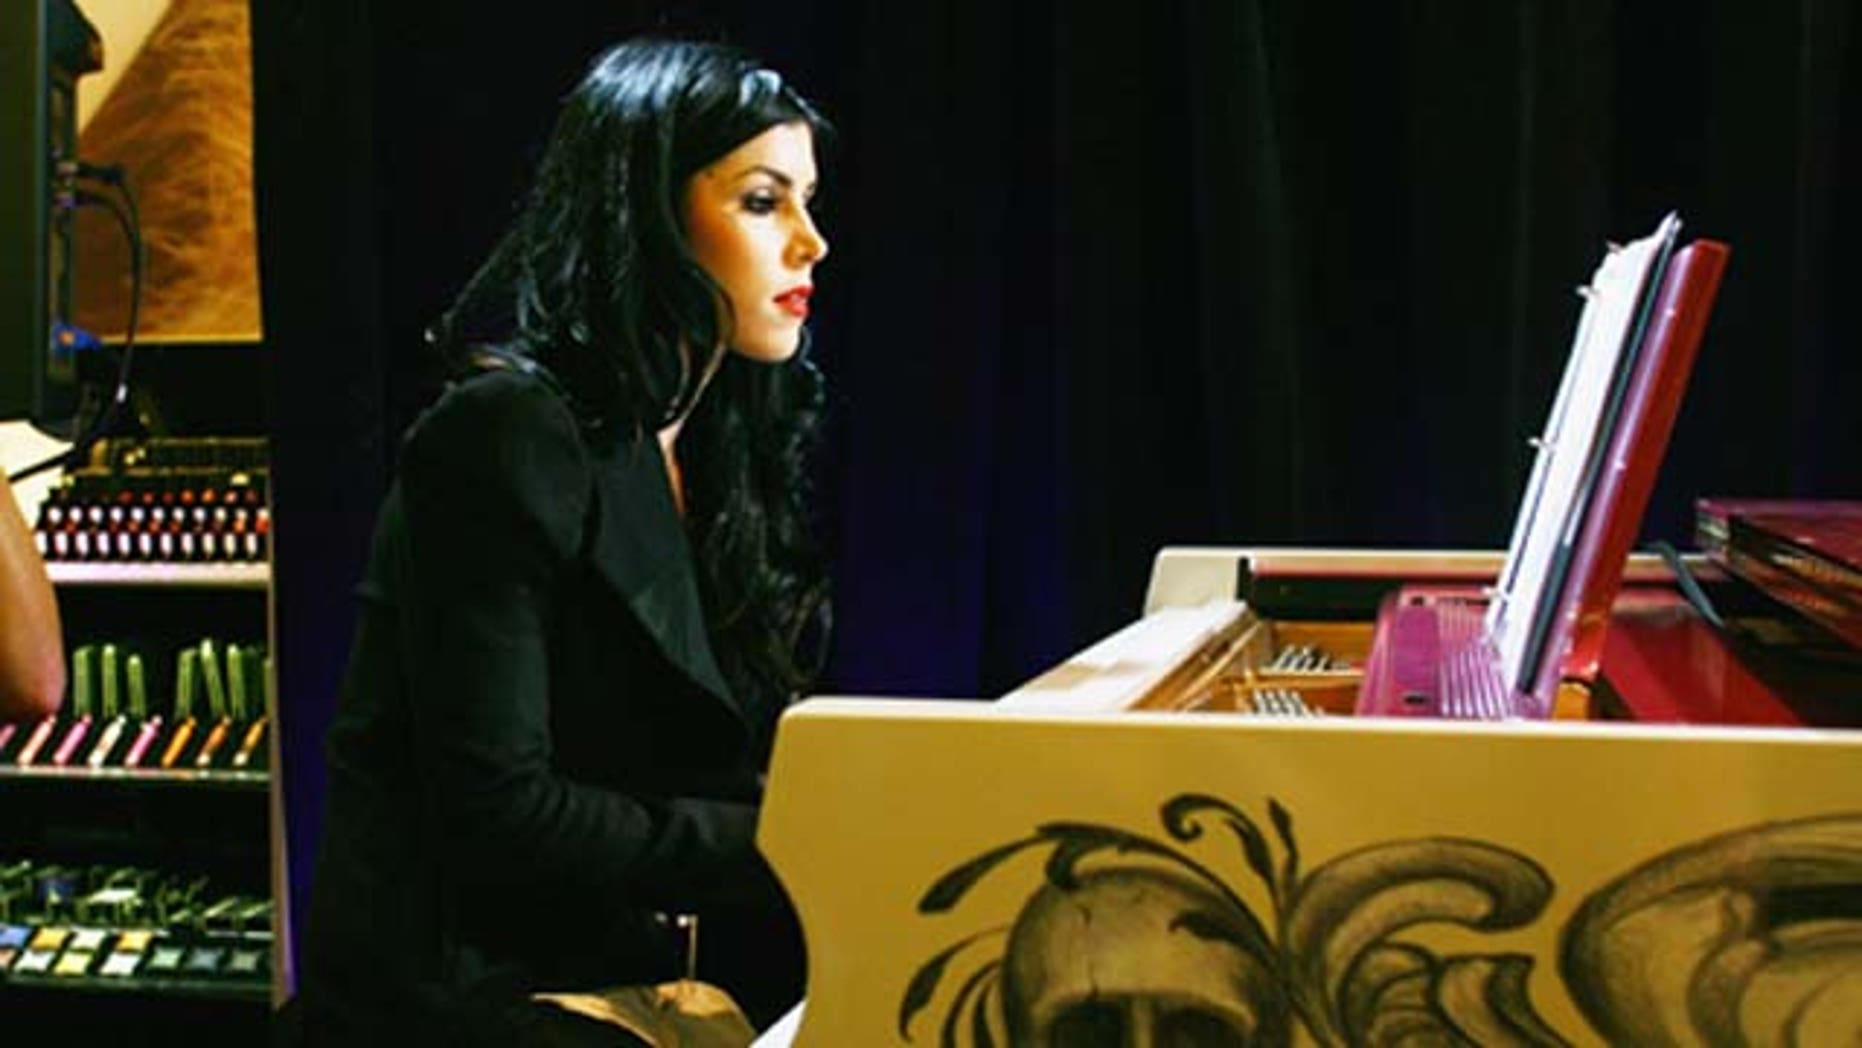 Sept. 8, 2011: Tattoo artist and TV star Kat Von D entertains the guests by playing the piano during Sephora Times Square & Sephora 5 Times Square Fashion's Night Out at Sephora Times Square in New York City.